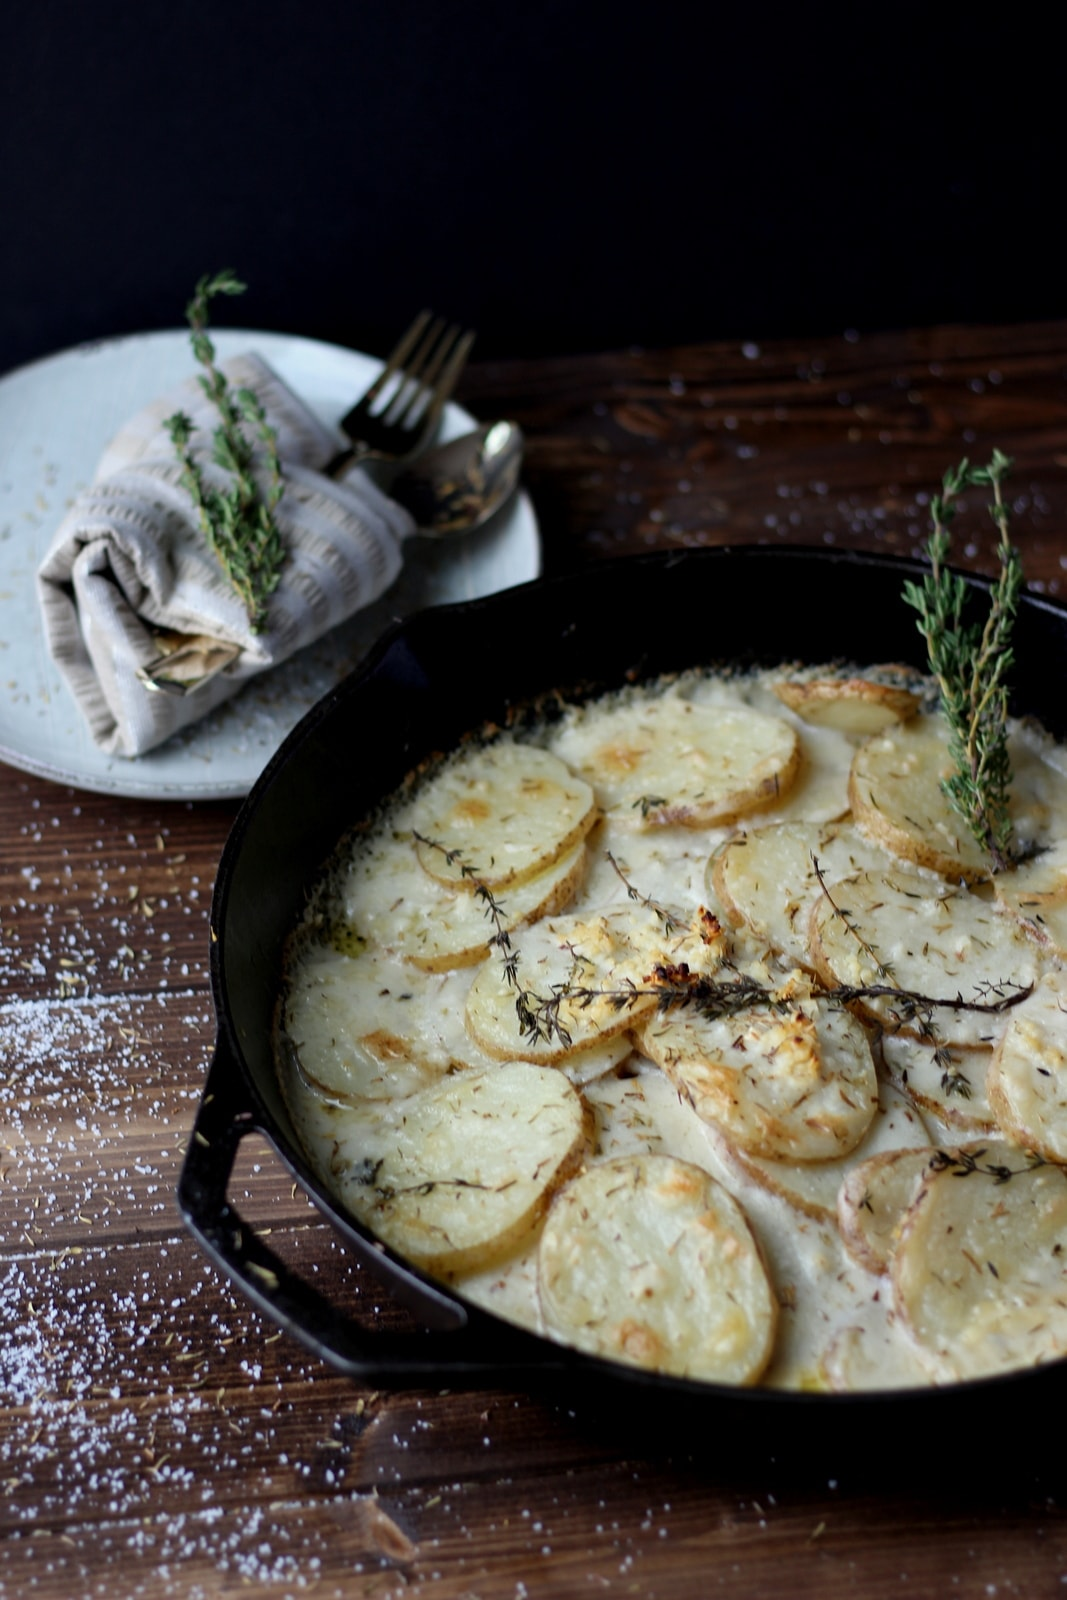 Goat Cheese Potatoes Au Gratin + Browned Butter and Fresh Thyme - thewoodenskillet.com #foodphotography #foodstyling